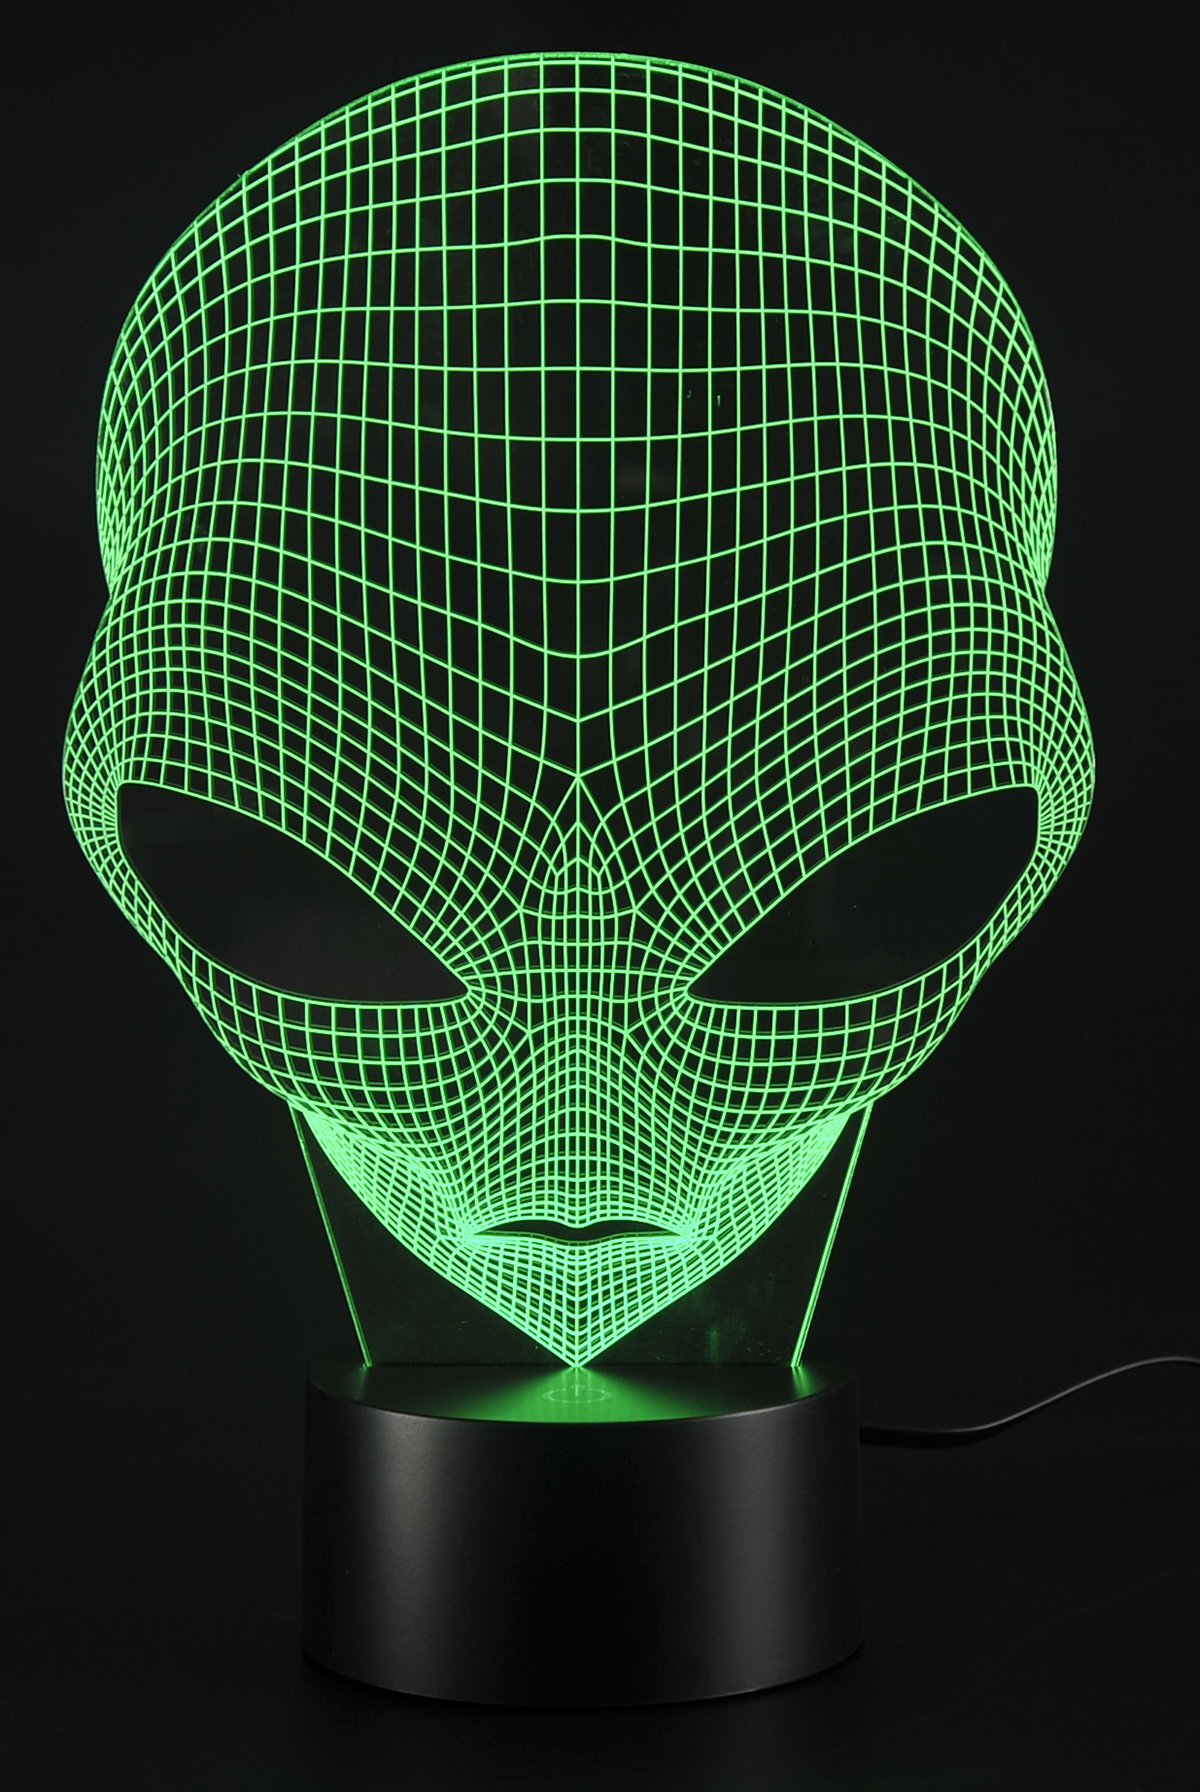 PowerTRC Lamp USB Power 7 Colors Amazing Optical Illusion 3D Grow LED Lamp Alien Shapes Children Bedroom Night Light